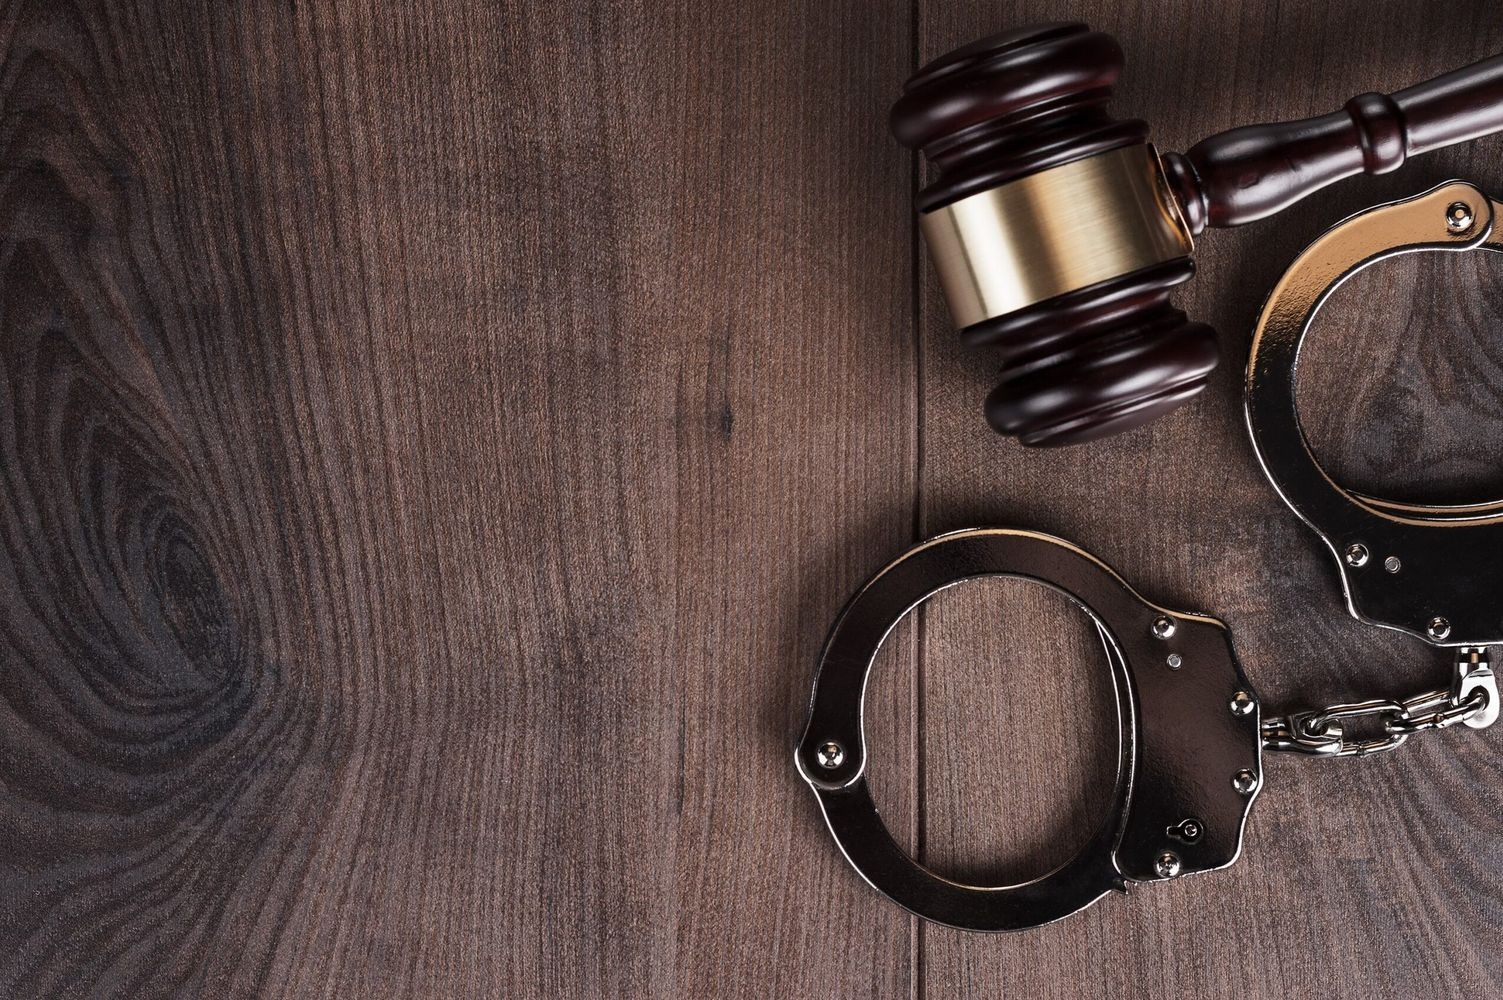 handcuffs-and-judge-gavel-on-wooden-background-PQKNDCW-min-1-scaled